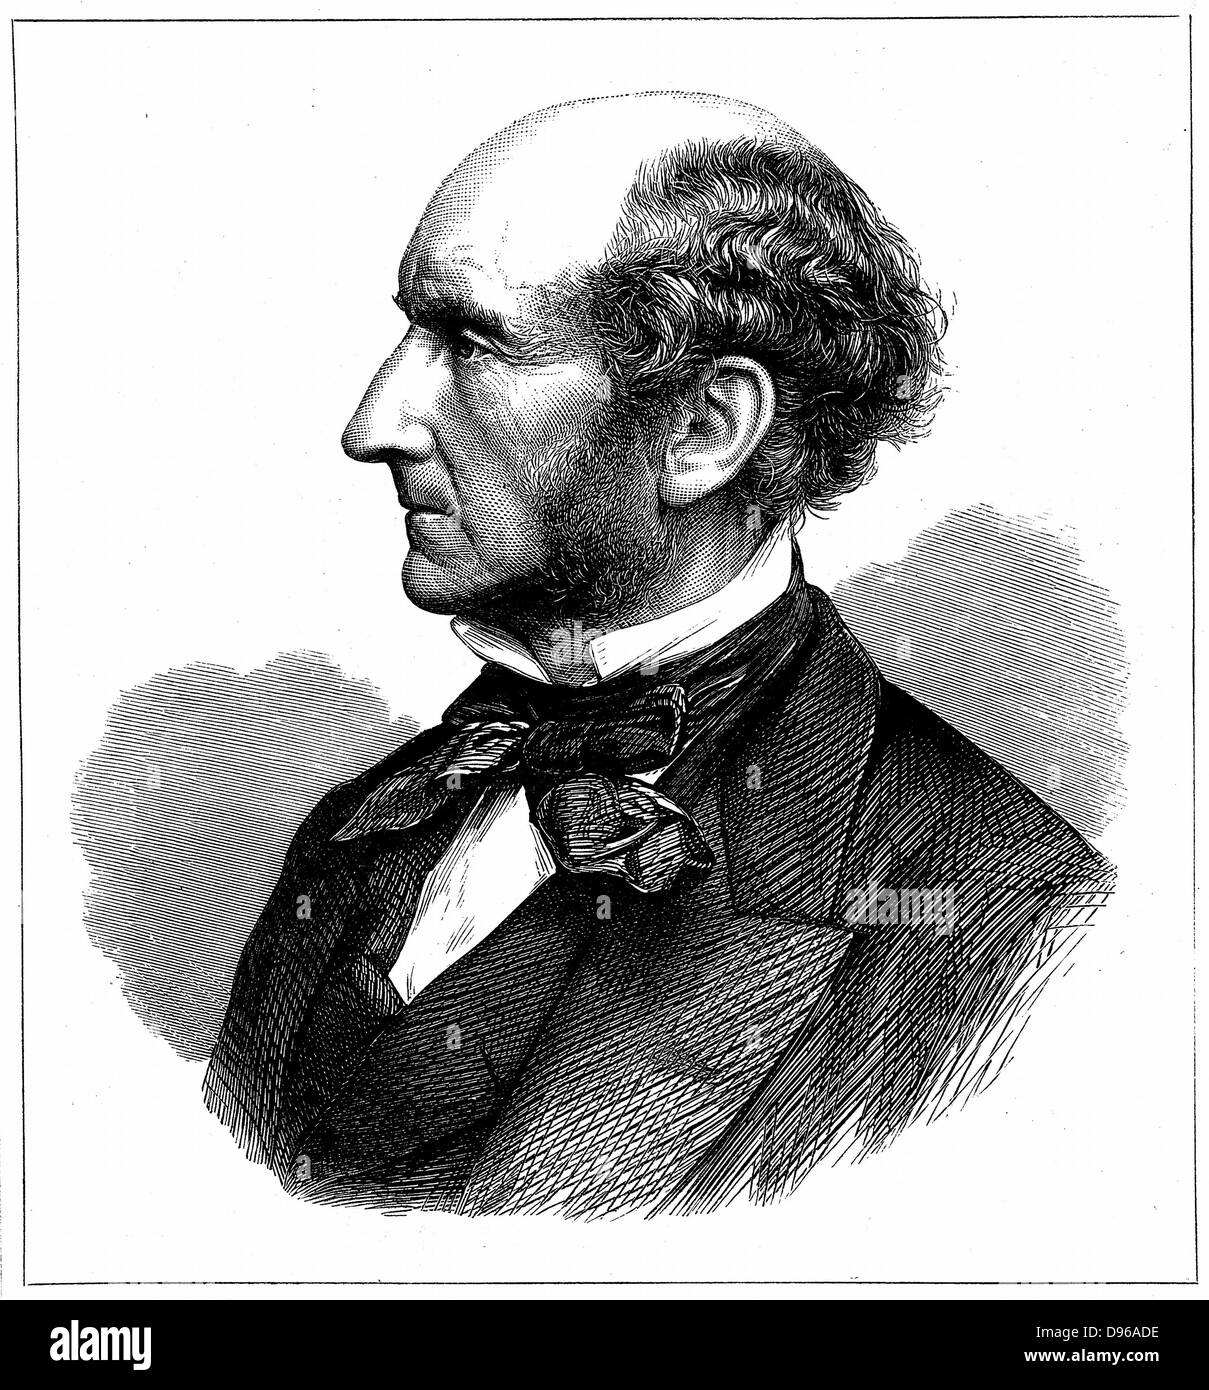 John Stuart Mill (1806-73)  British social reformer and philosopher. Wood engraving published at time of his death. - Stock Image